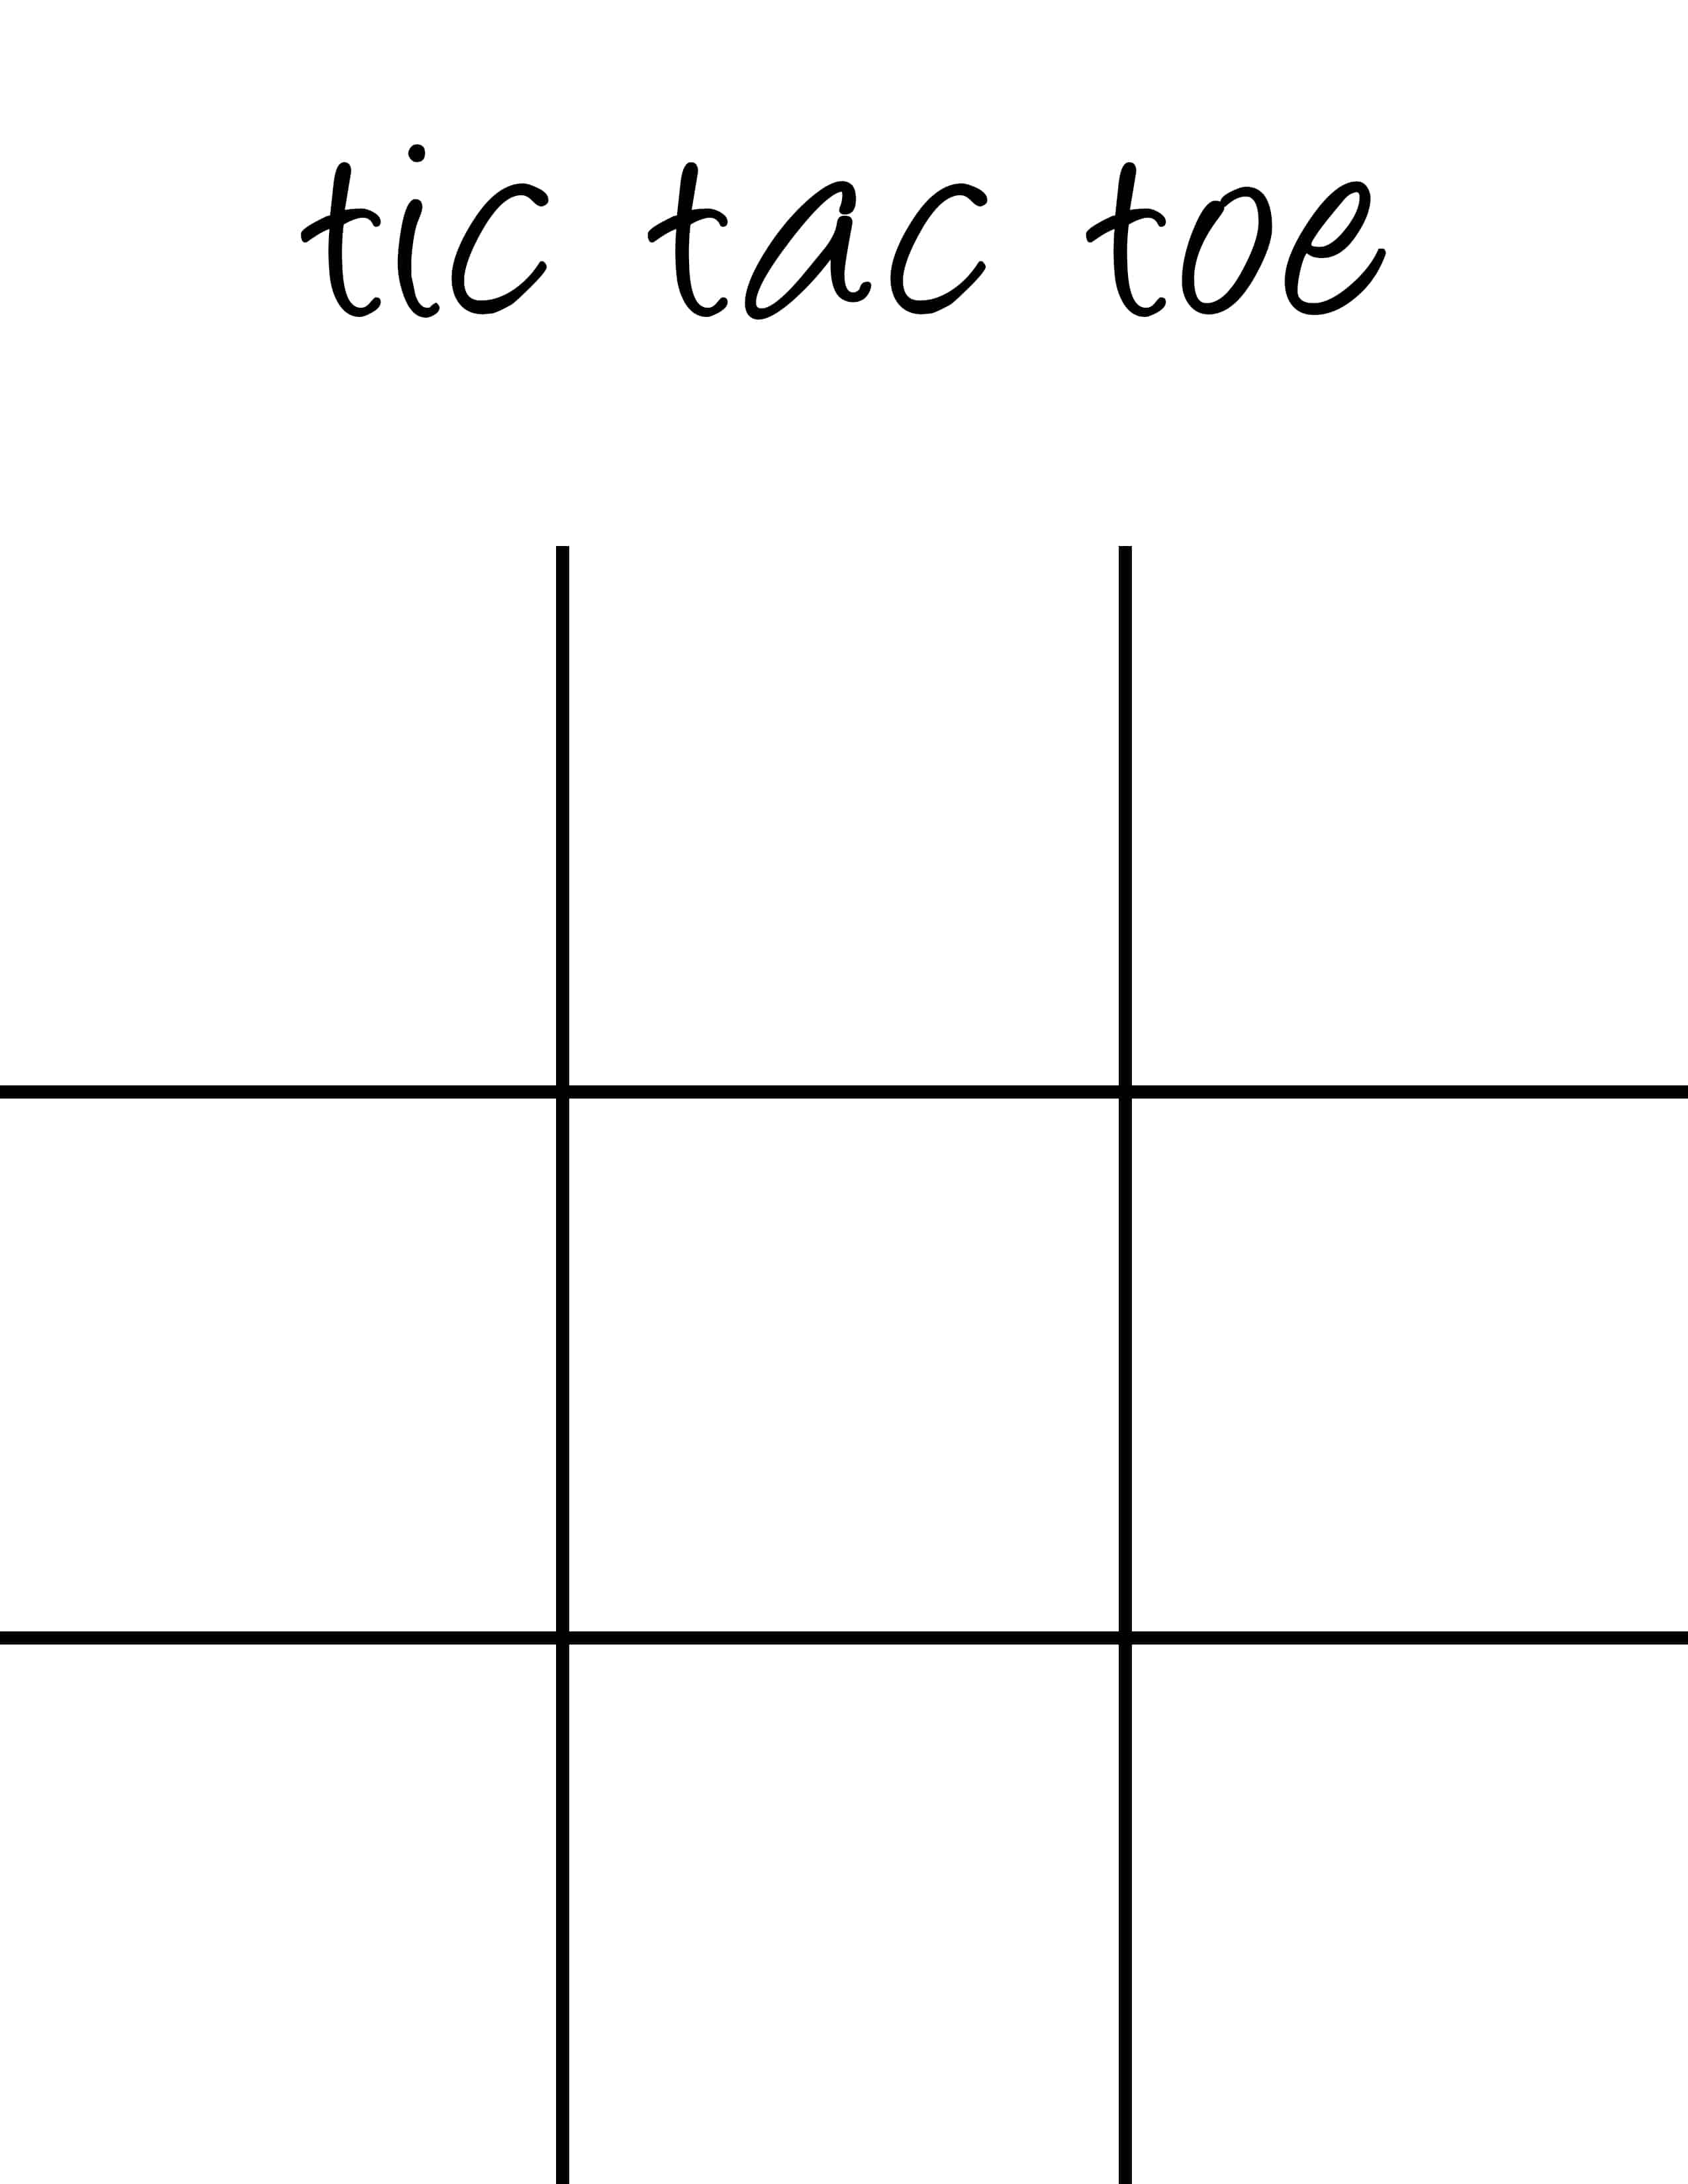 image about Tic Tac Toe Board Printable identified as Tic Tac Toe Board Printable - 5 Minutes for Mother